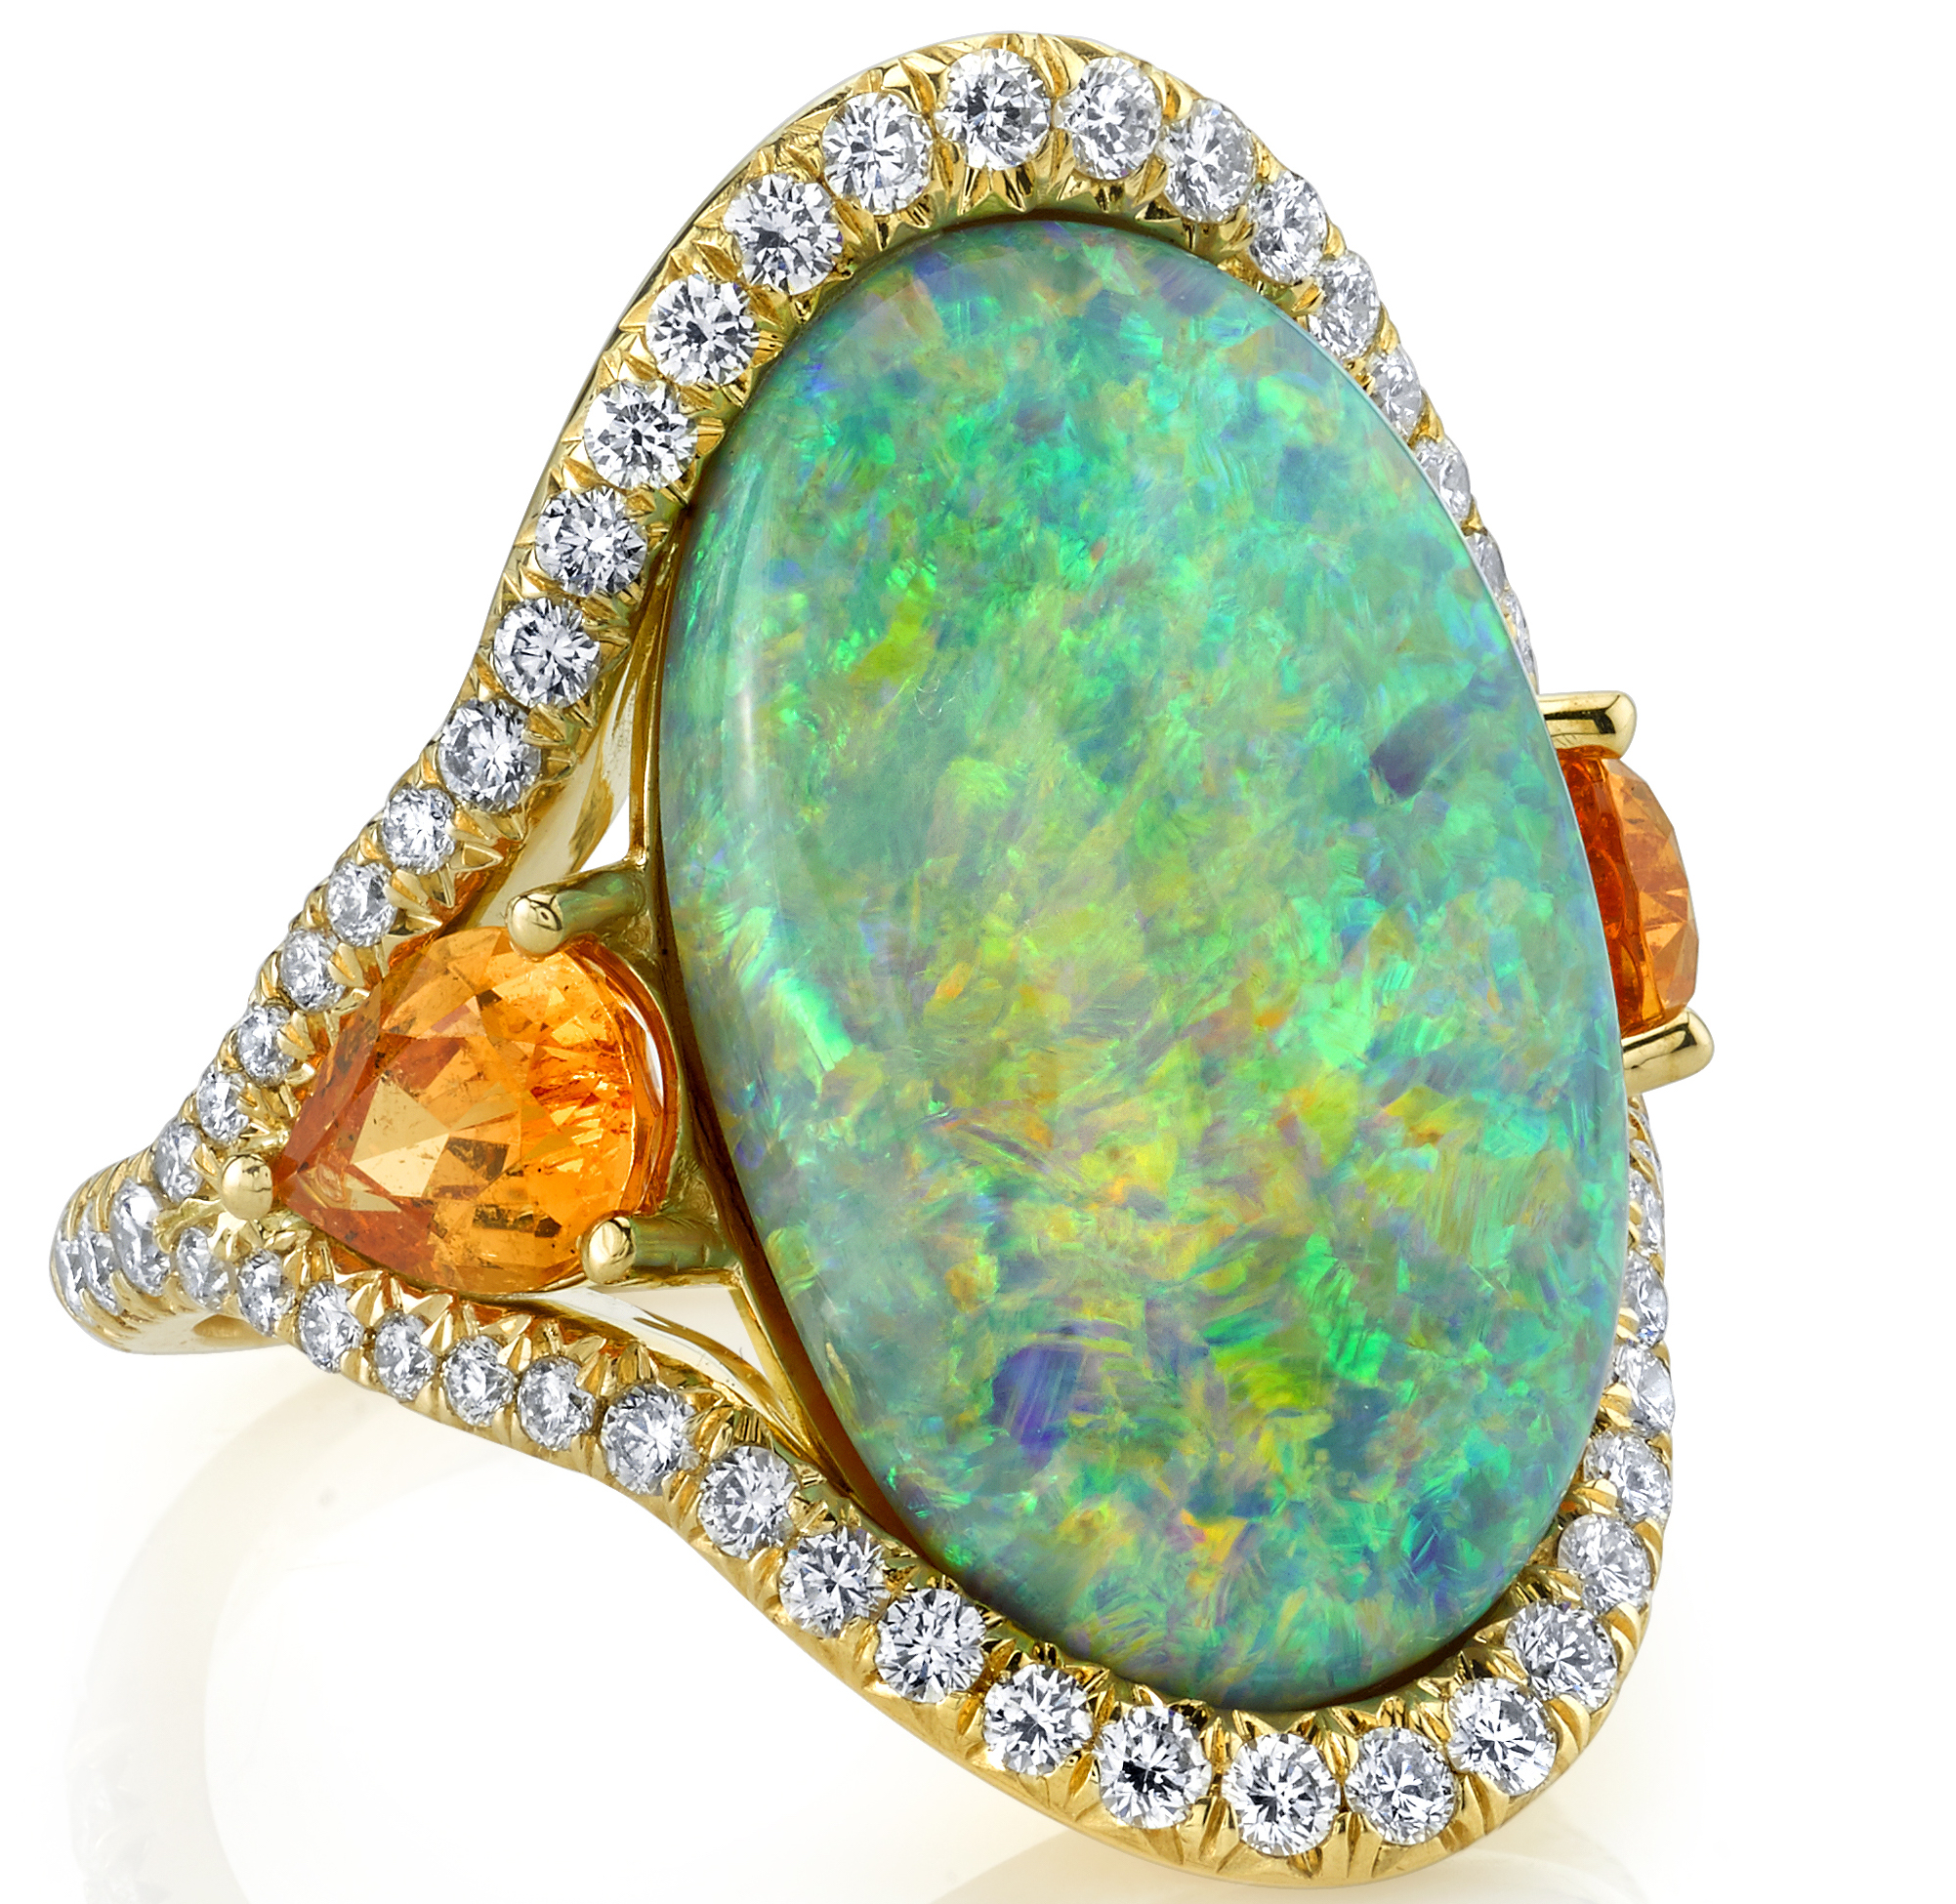 Omi Privé black opal Sevilla ring| JCK On Your Market